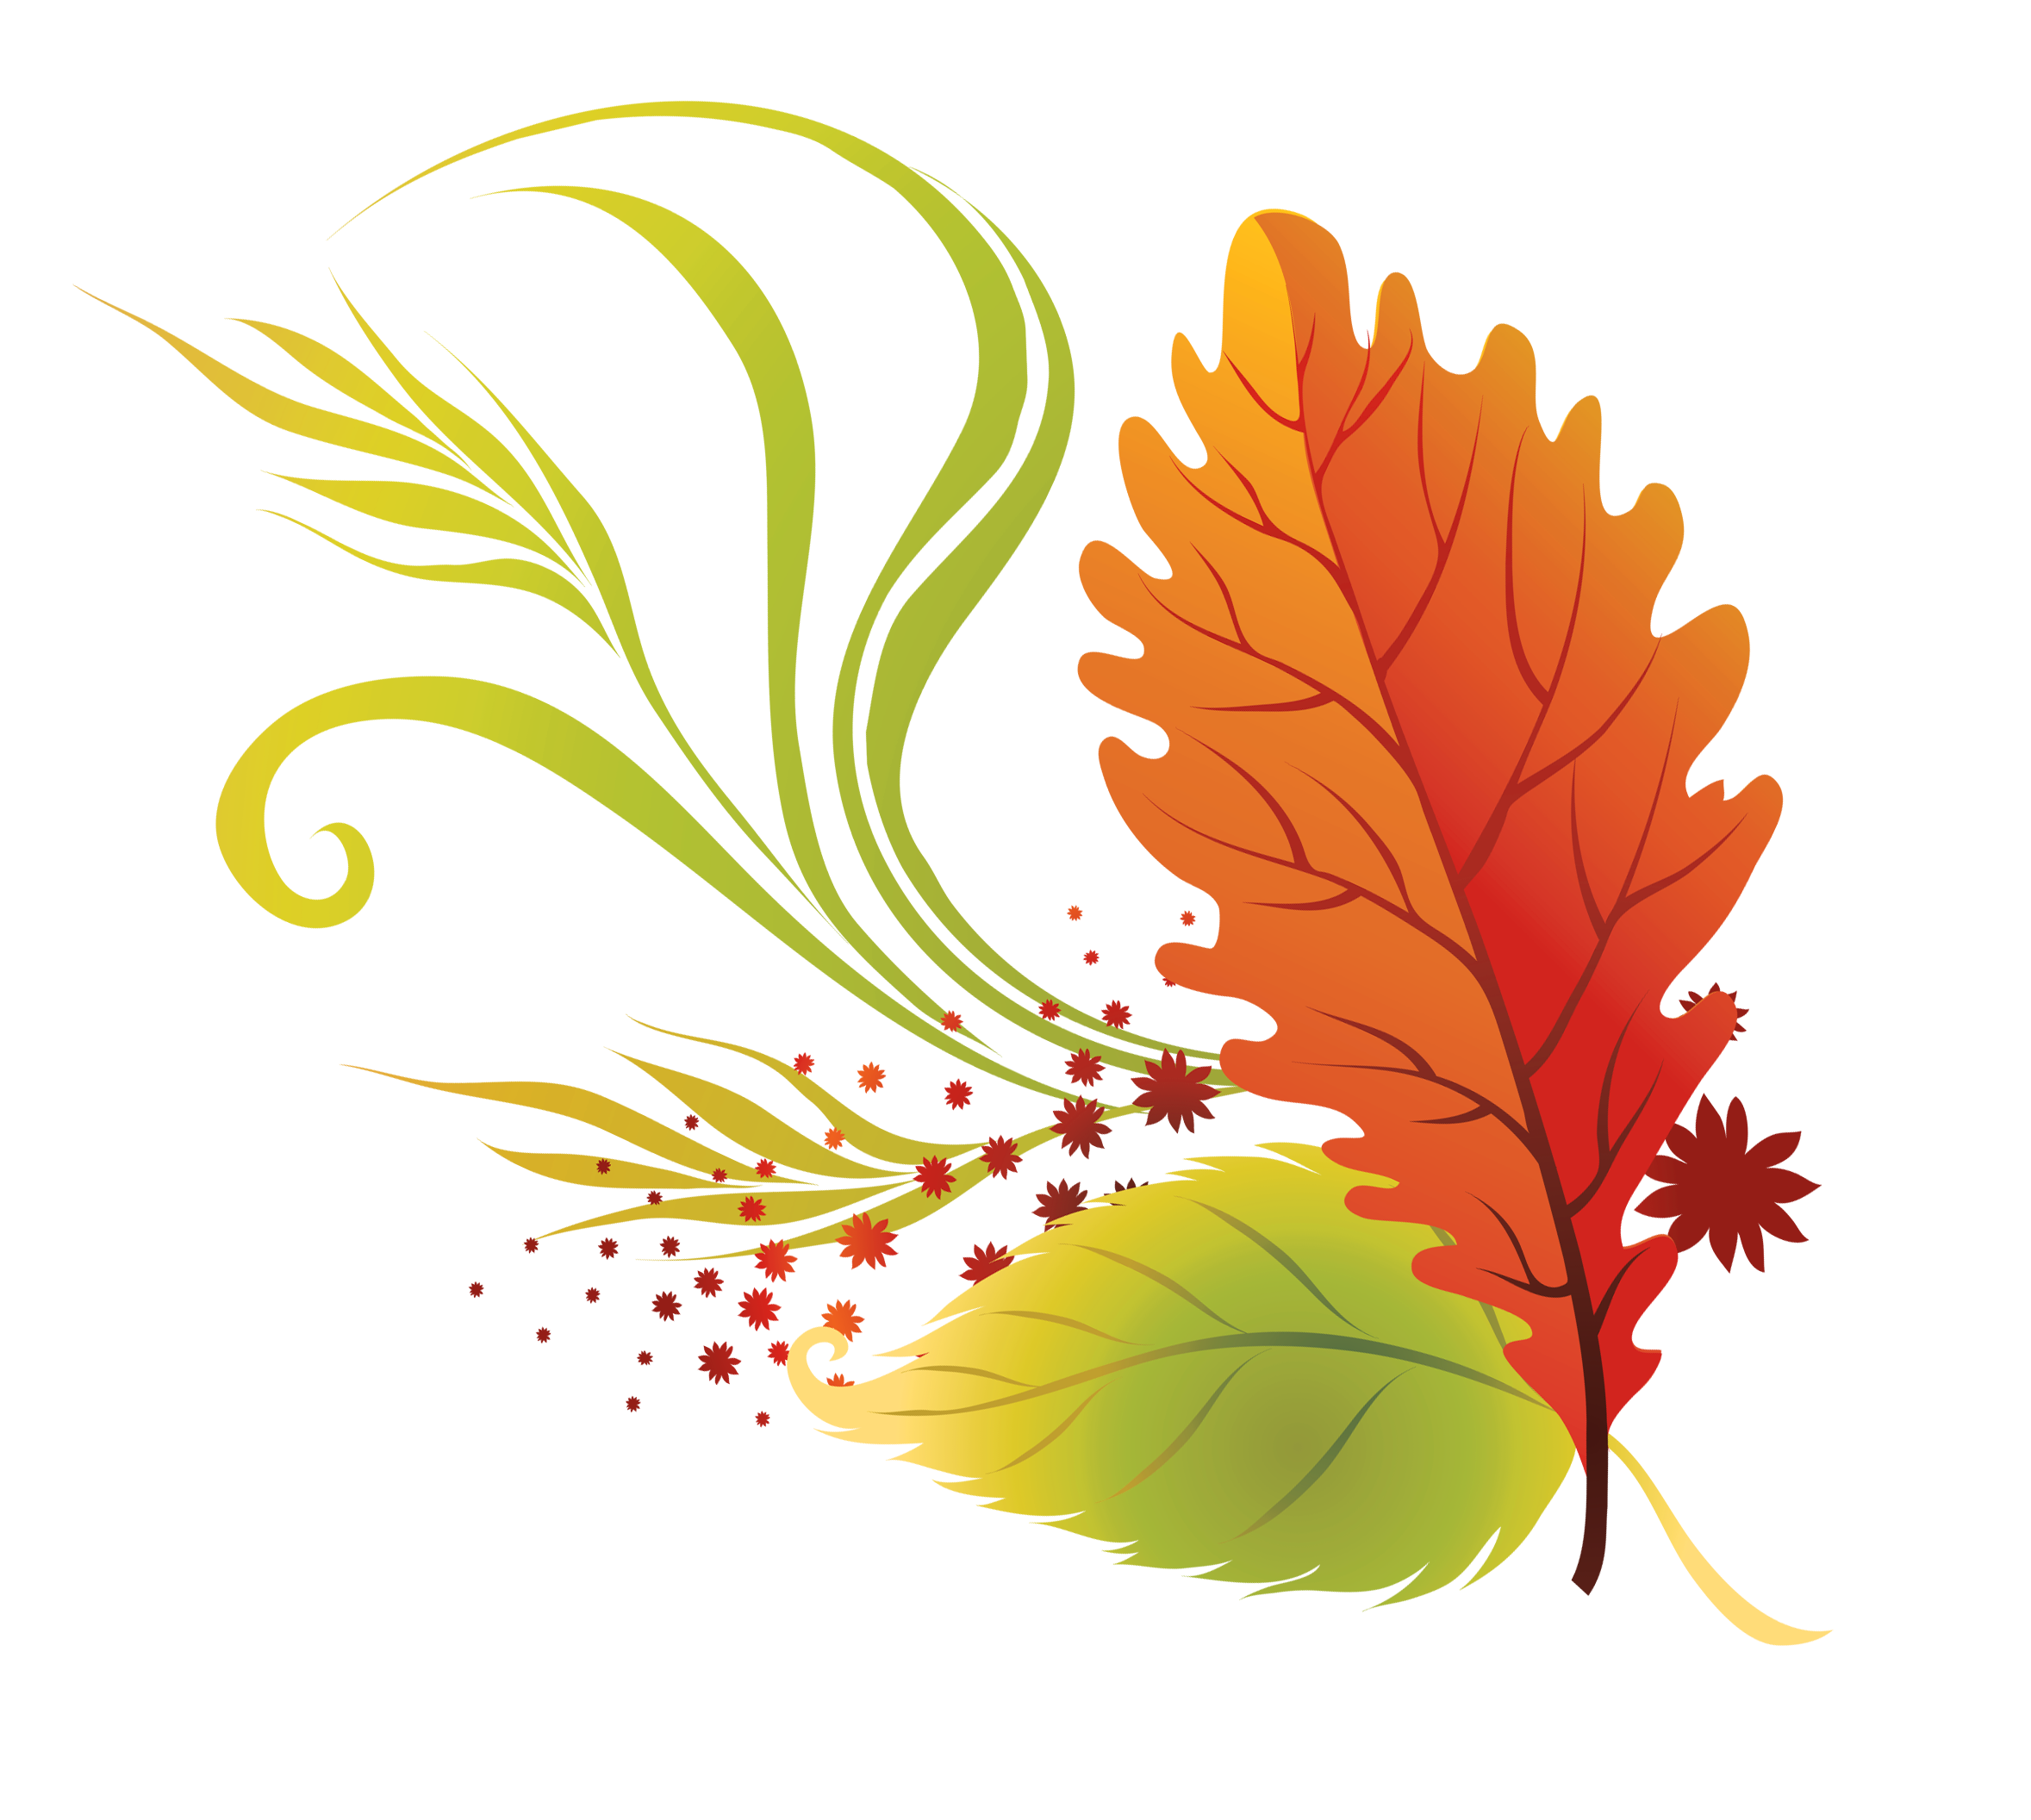 medium resolution of fall leaves clip art beautiful autumn clipart 2 image 10233